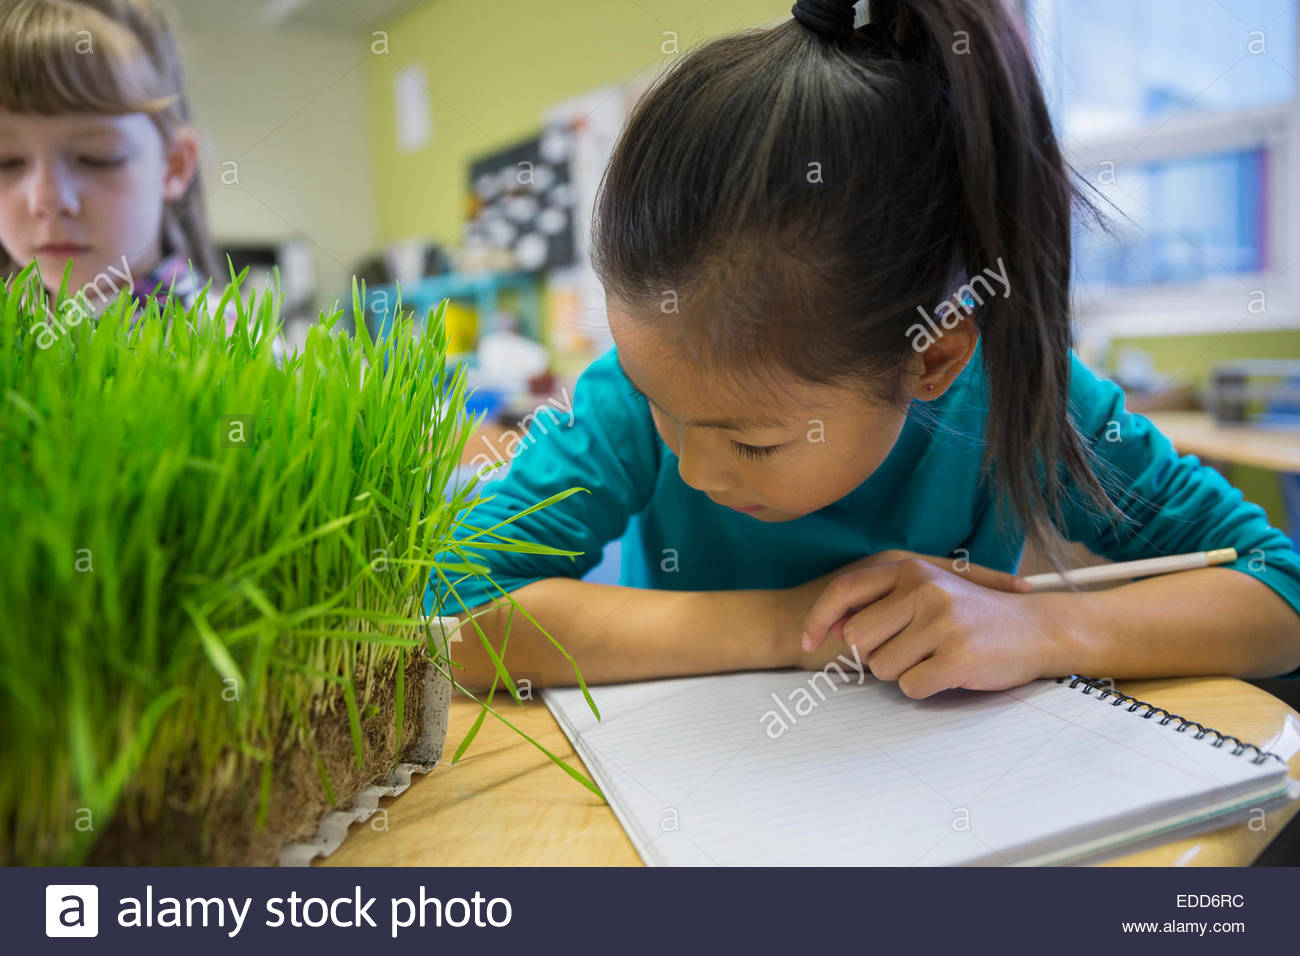 Elementary students examining sprouts in laboratory - Stock Image